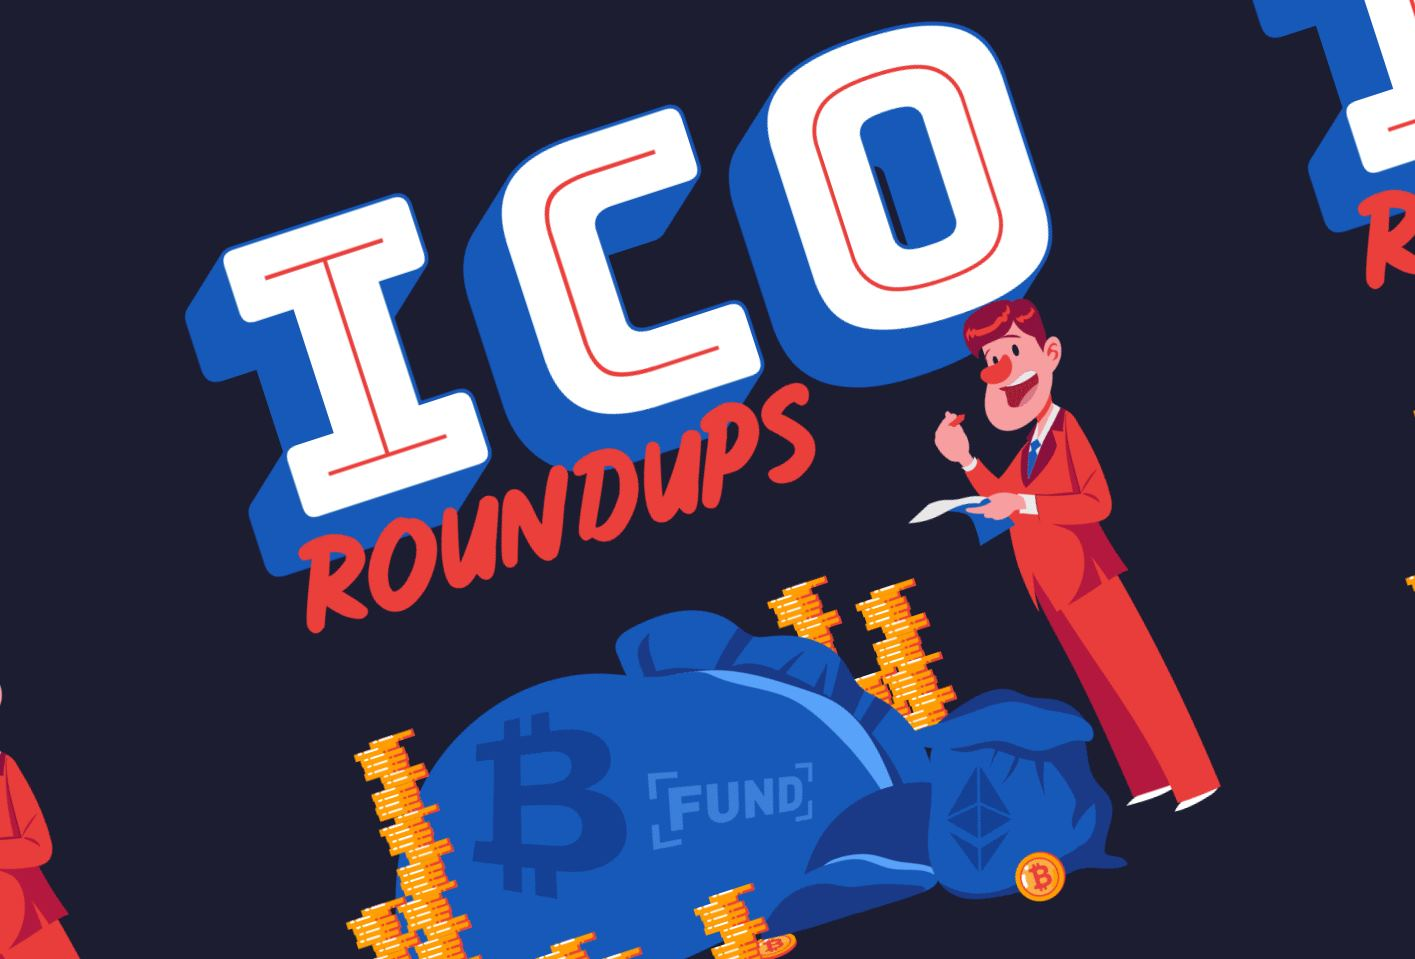 ICO Roundups: Revolutionary Way To Get Funded - #infographic